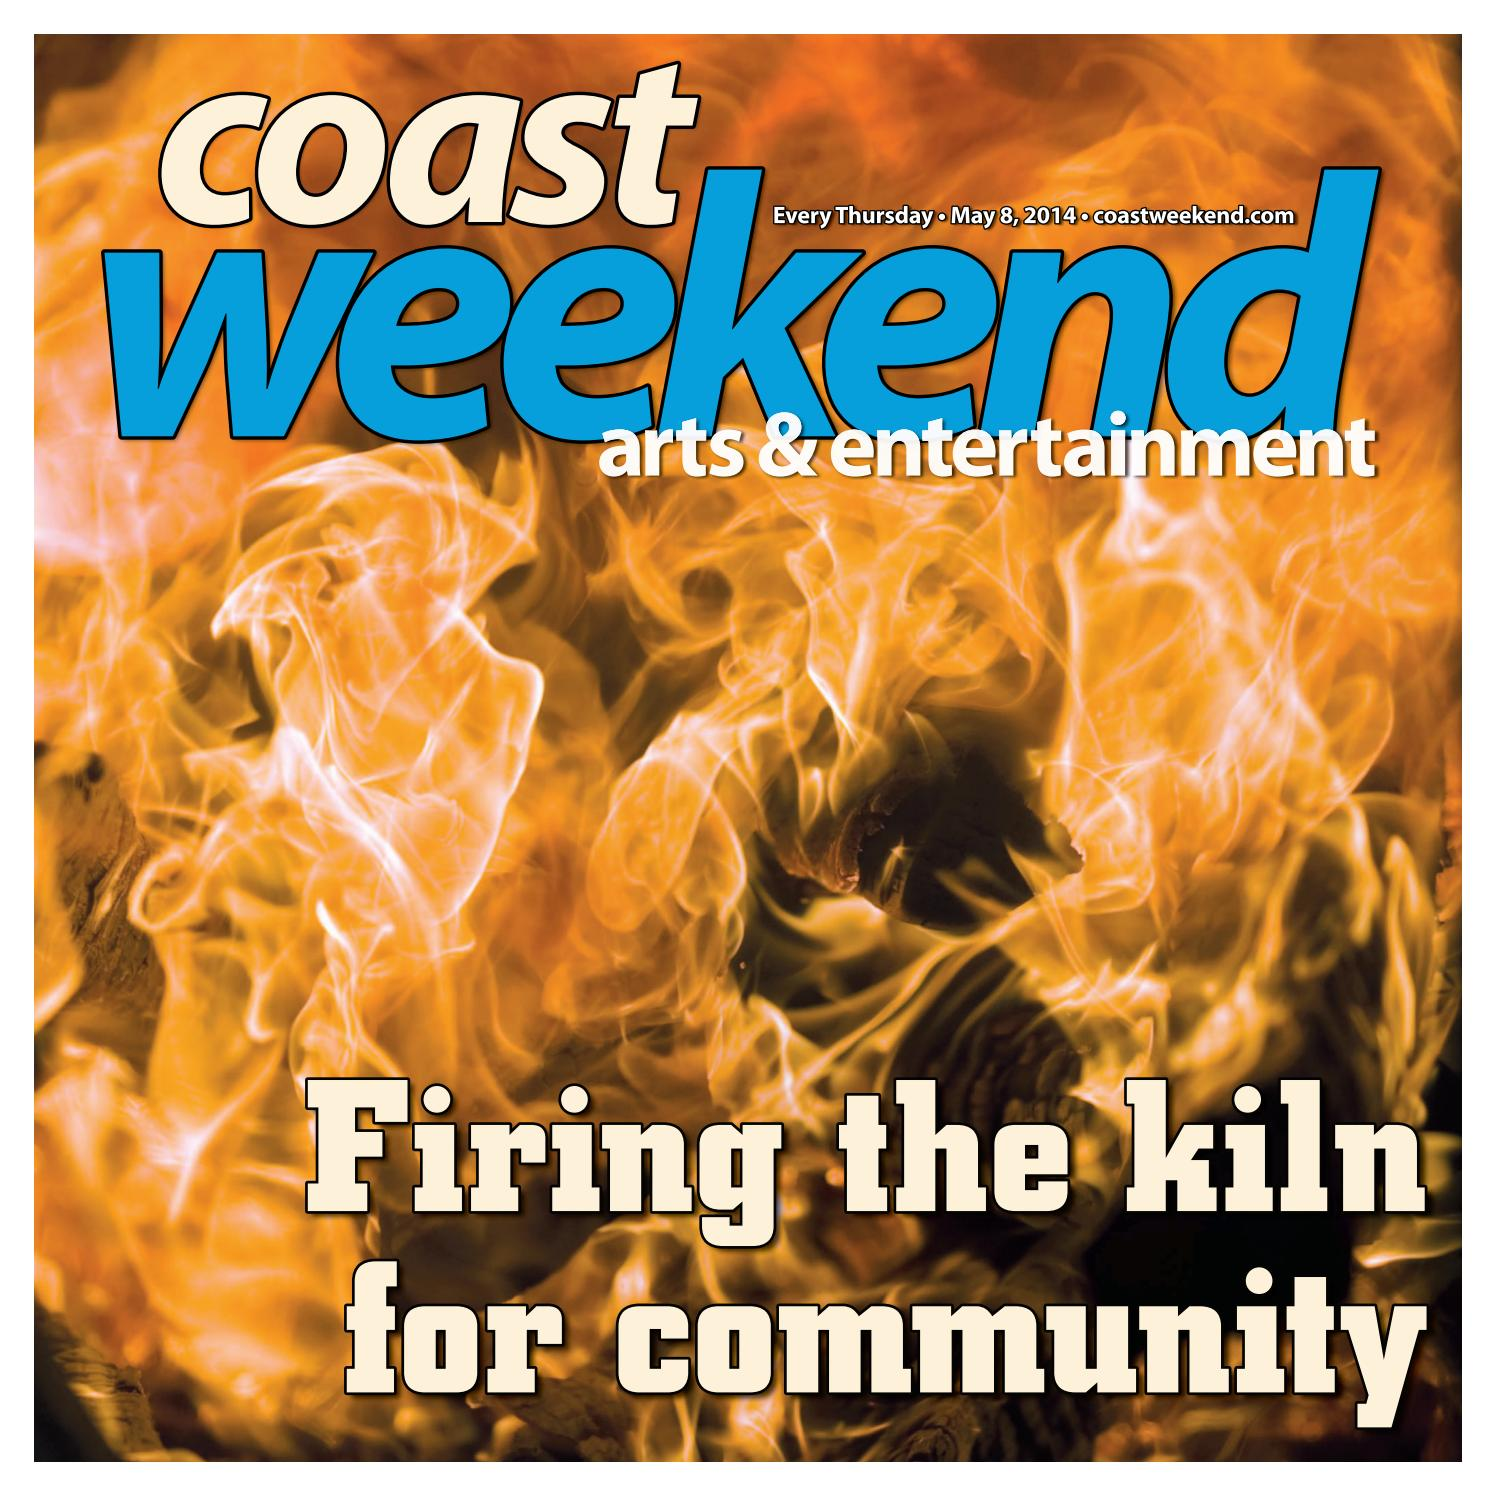 Coast Weekend May 8 2014 by Our Coast issuu